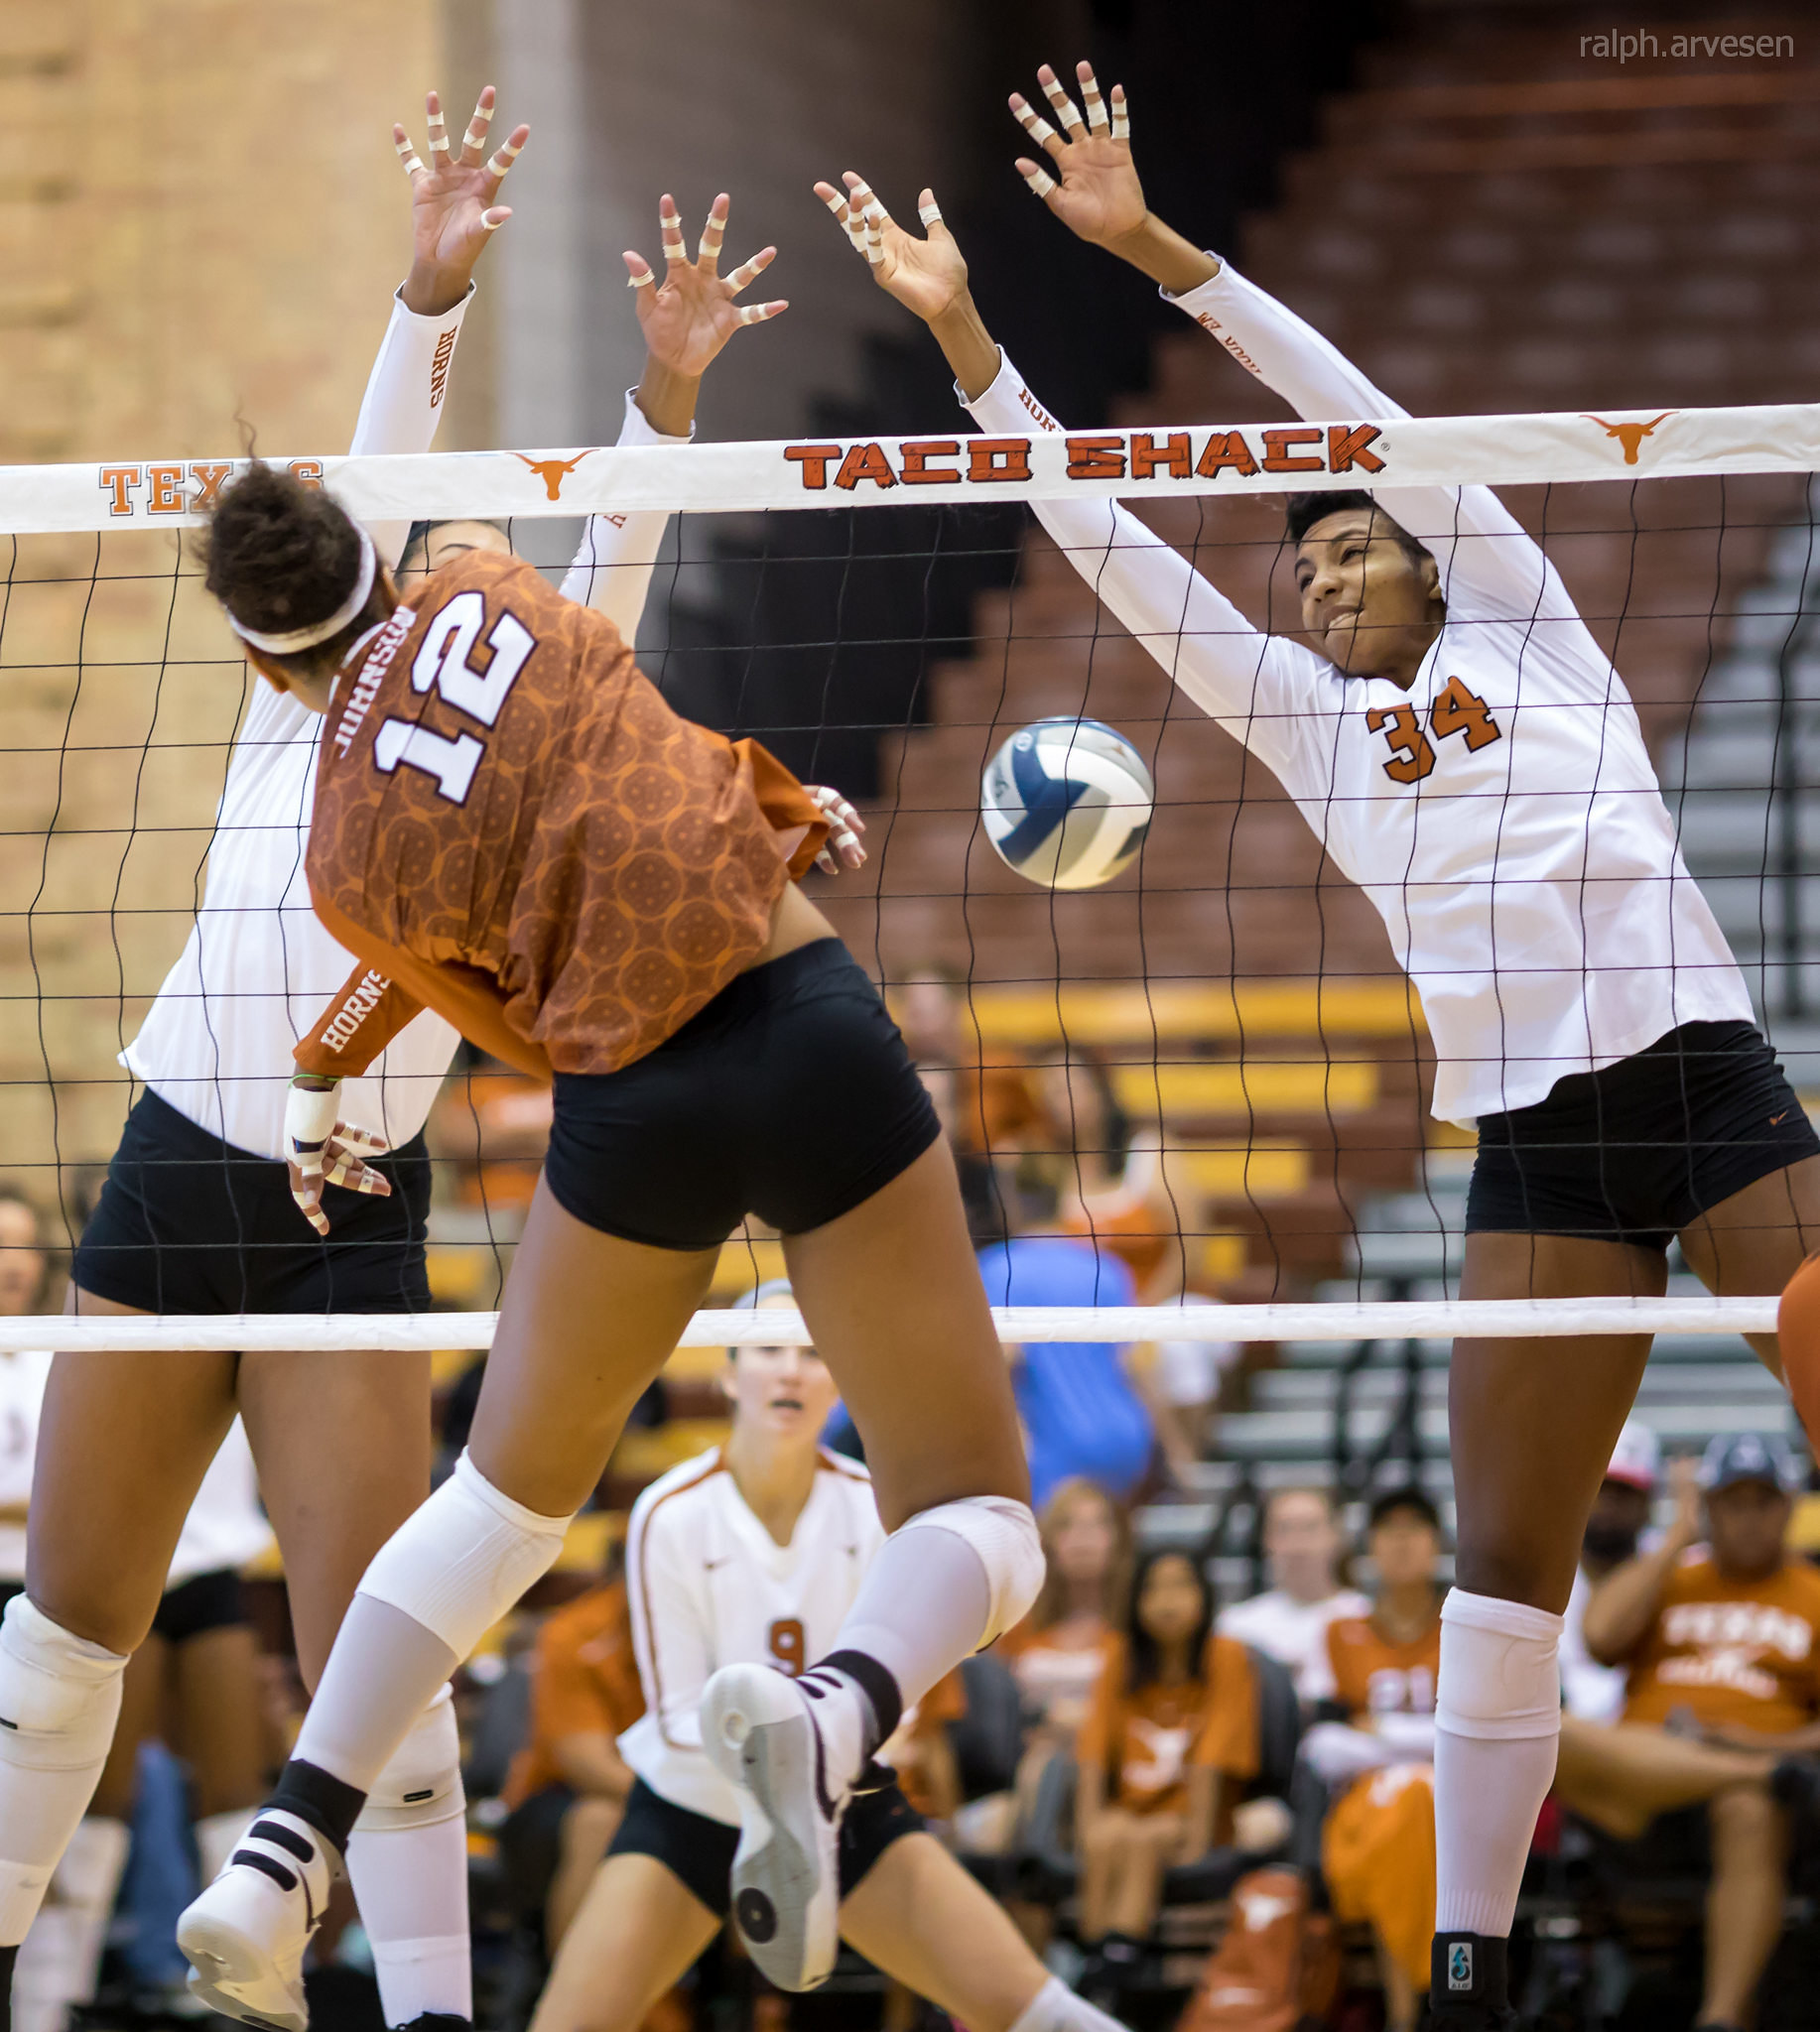 Types of Volleyball Hits-A kill happens when a player successfully hits or spikes, tips or  attacks the ball onto the opposing team's court floor. (Ralph Arvesen)